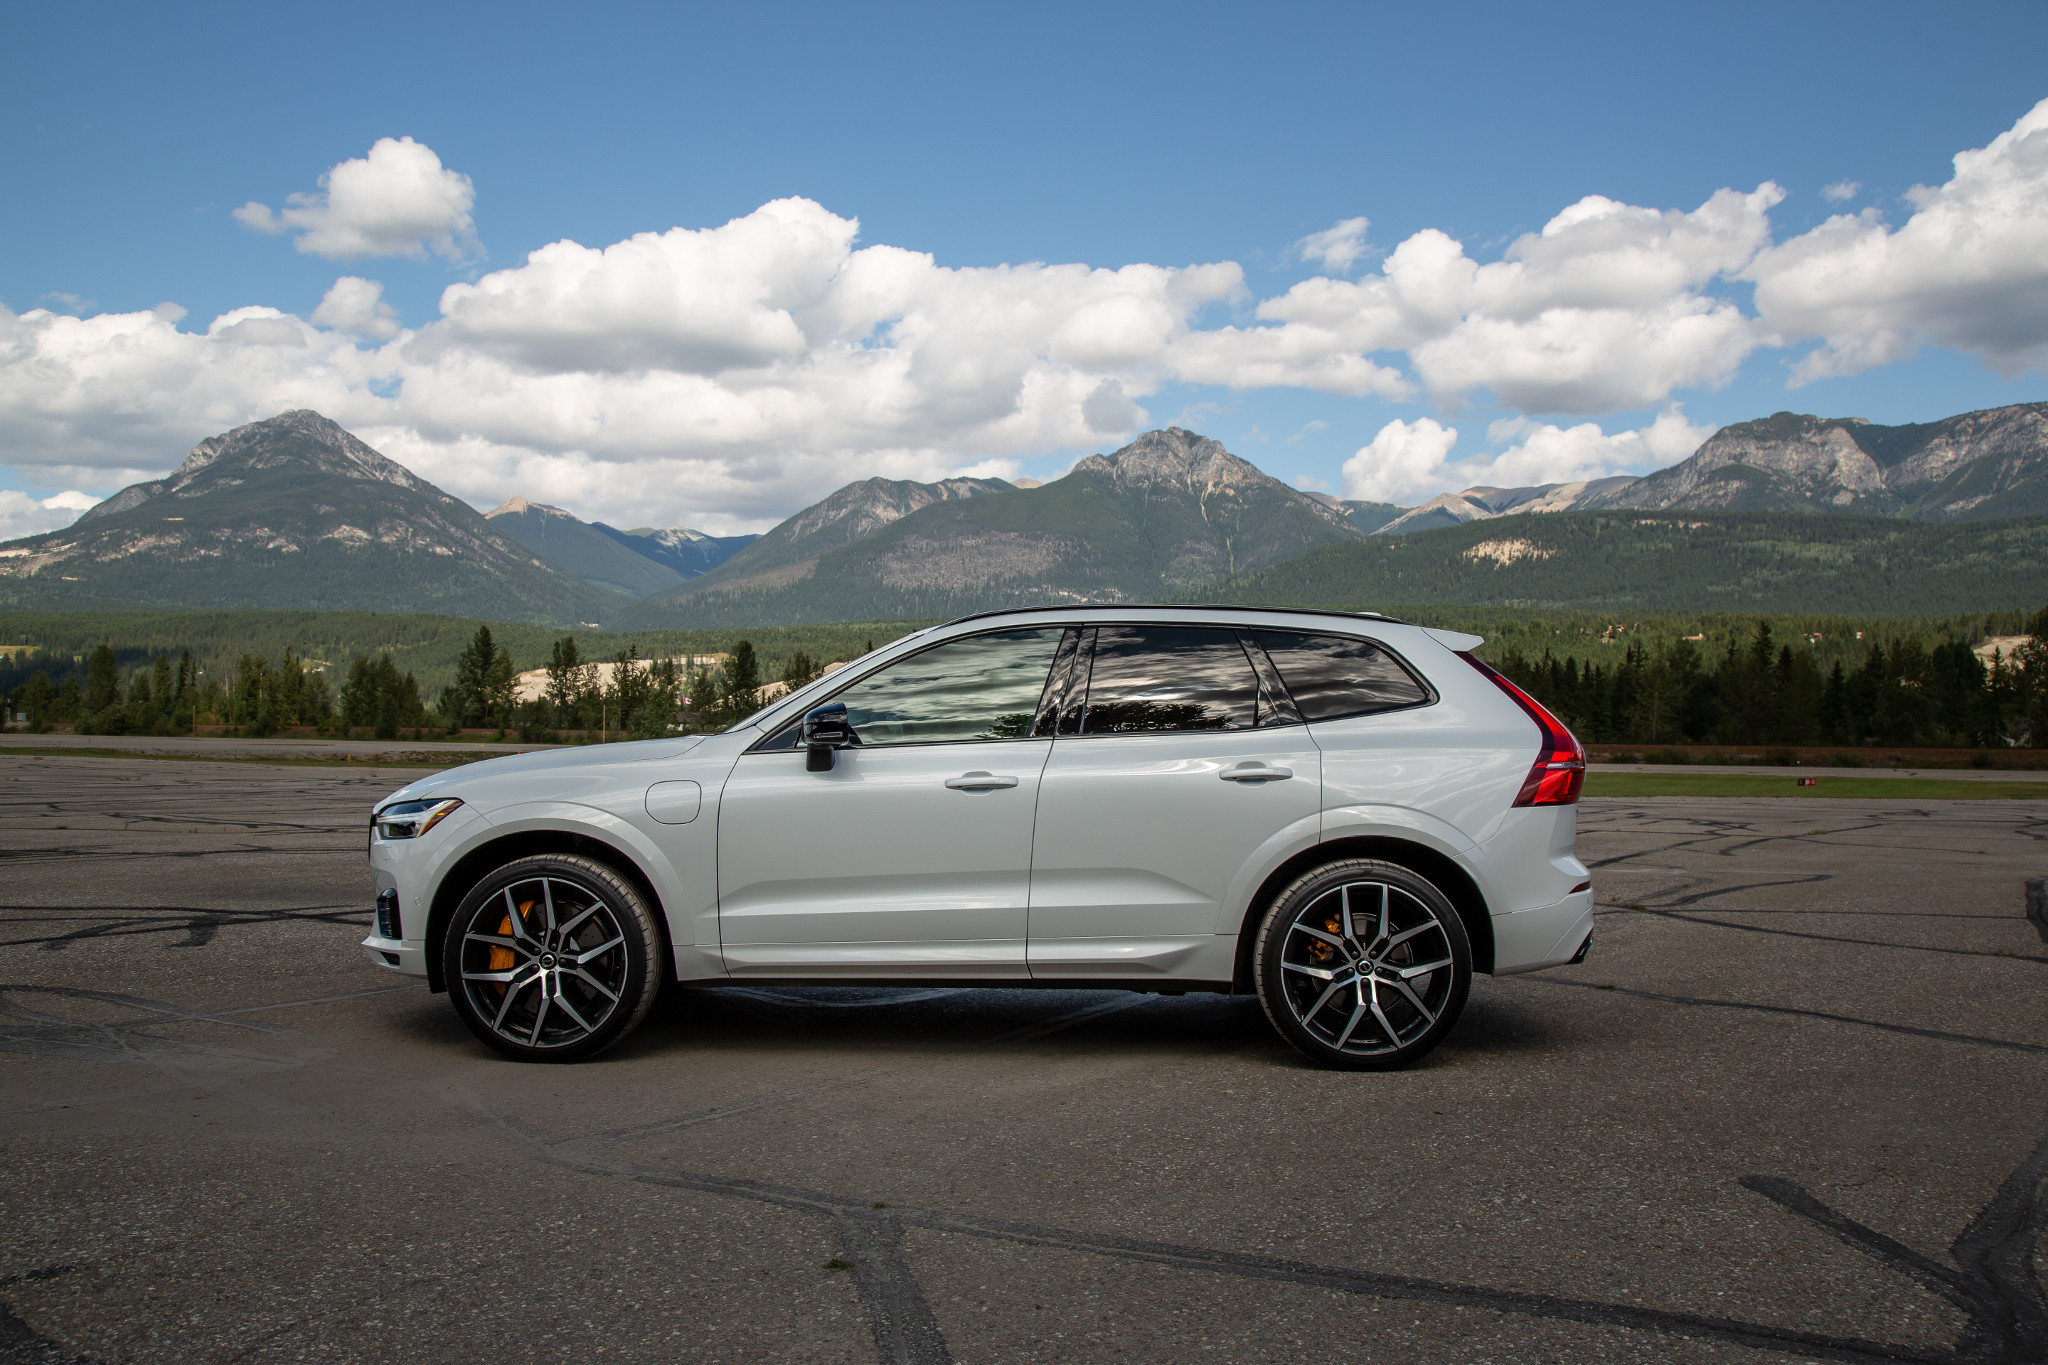 2020 Xc60 Review.Top 5 Reviews And Videos Of The Week Another Week Another